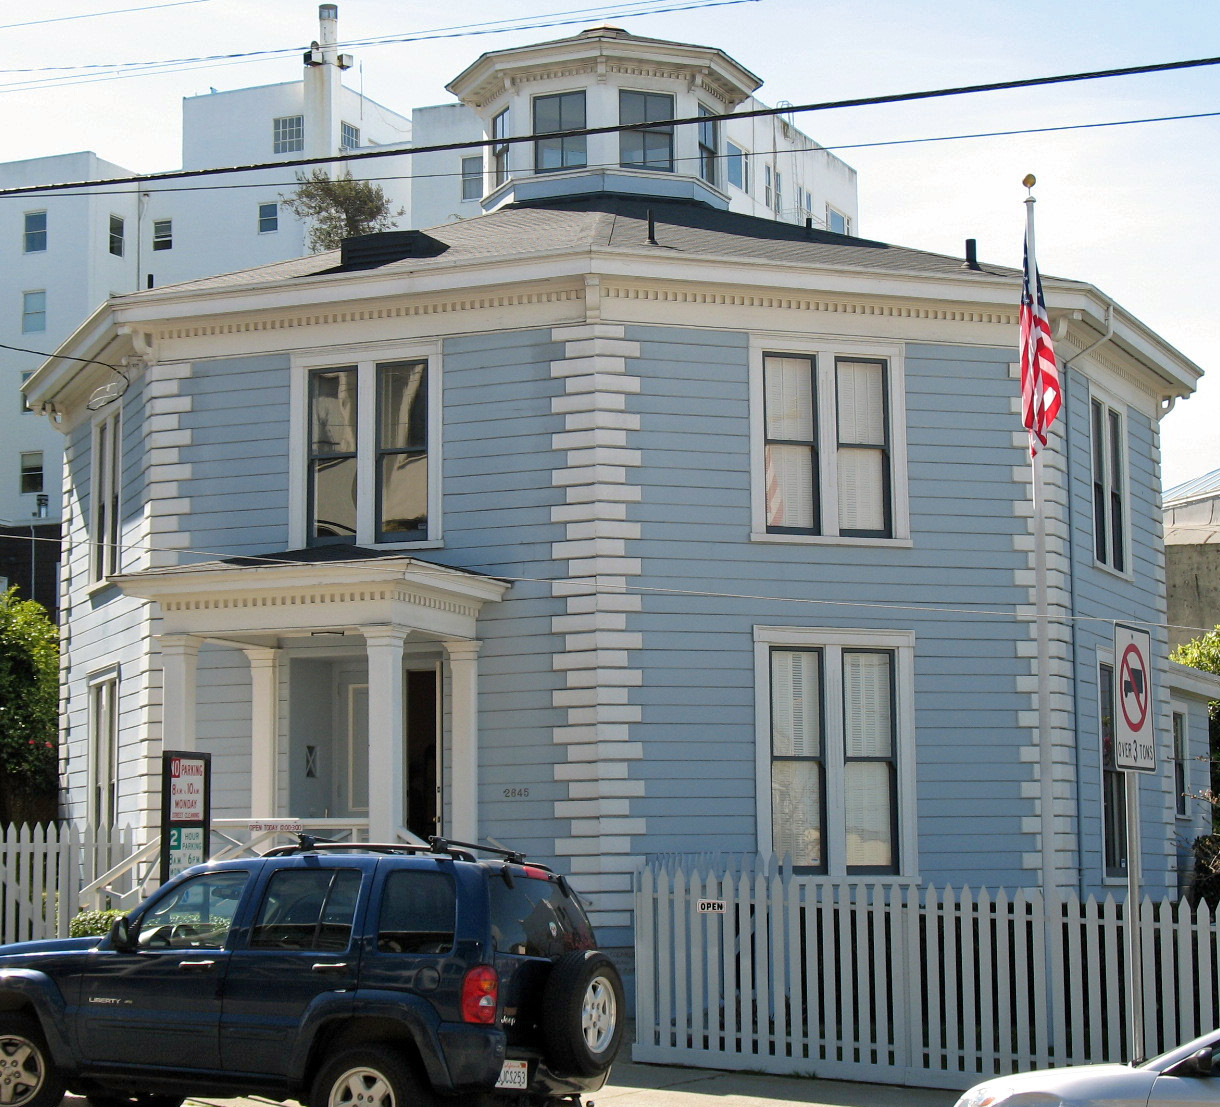 Built between 1857 and 1859, the Feusier Octagon House is one of the last remaining octagon-shaped structures in the city.